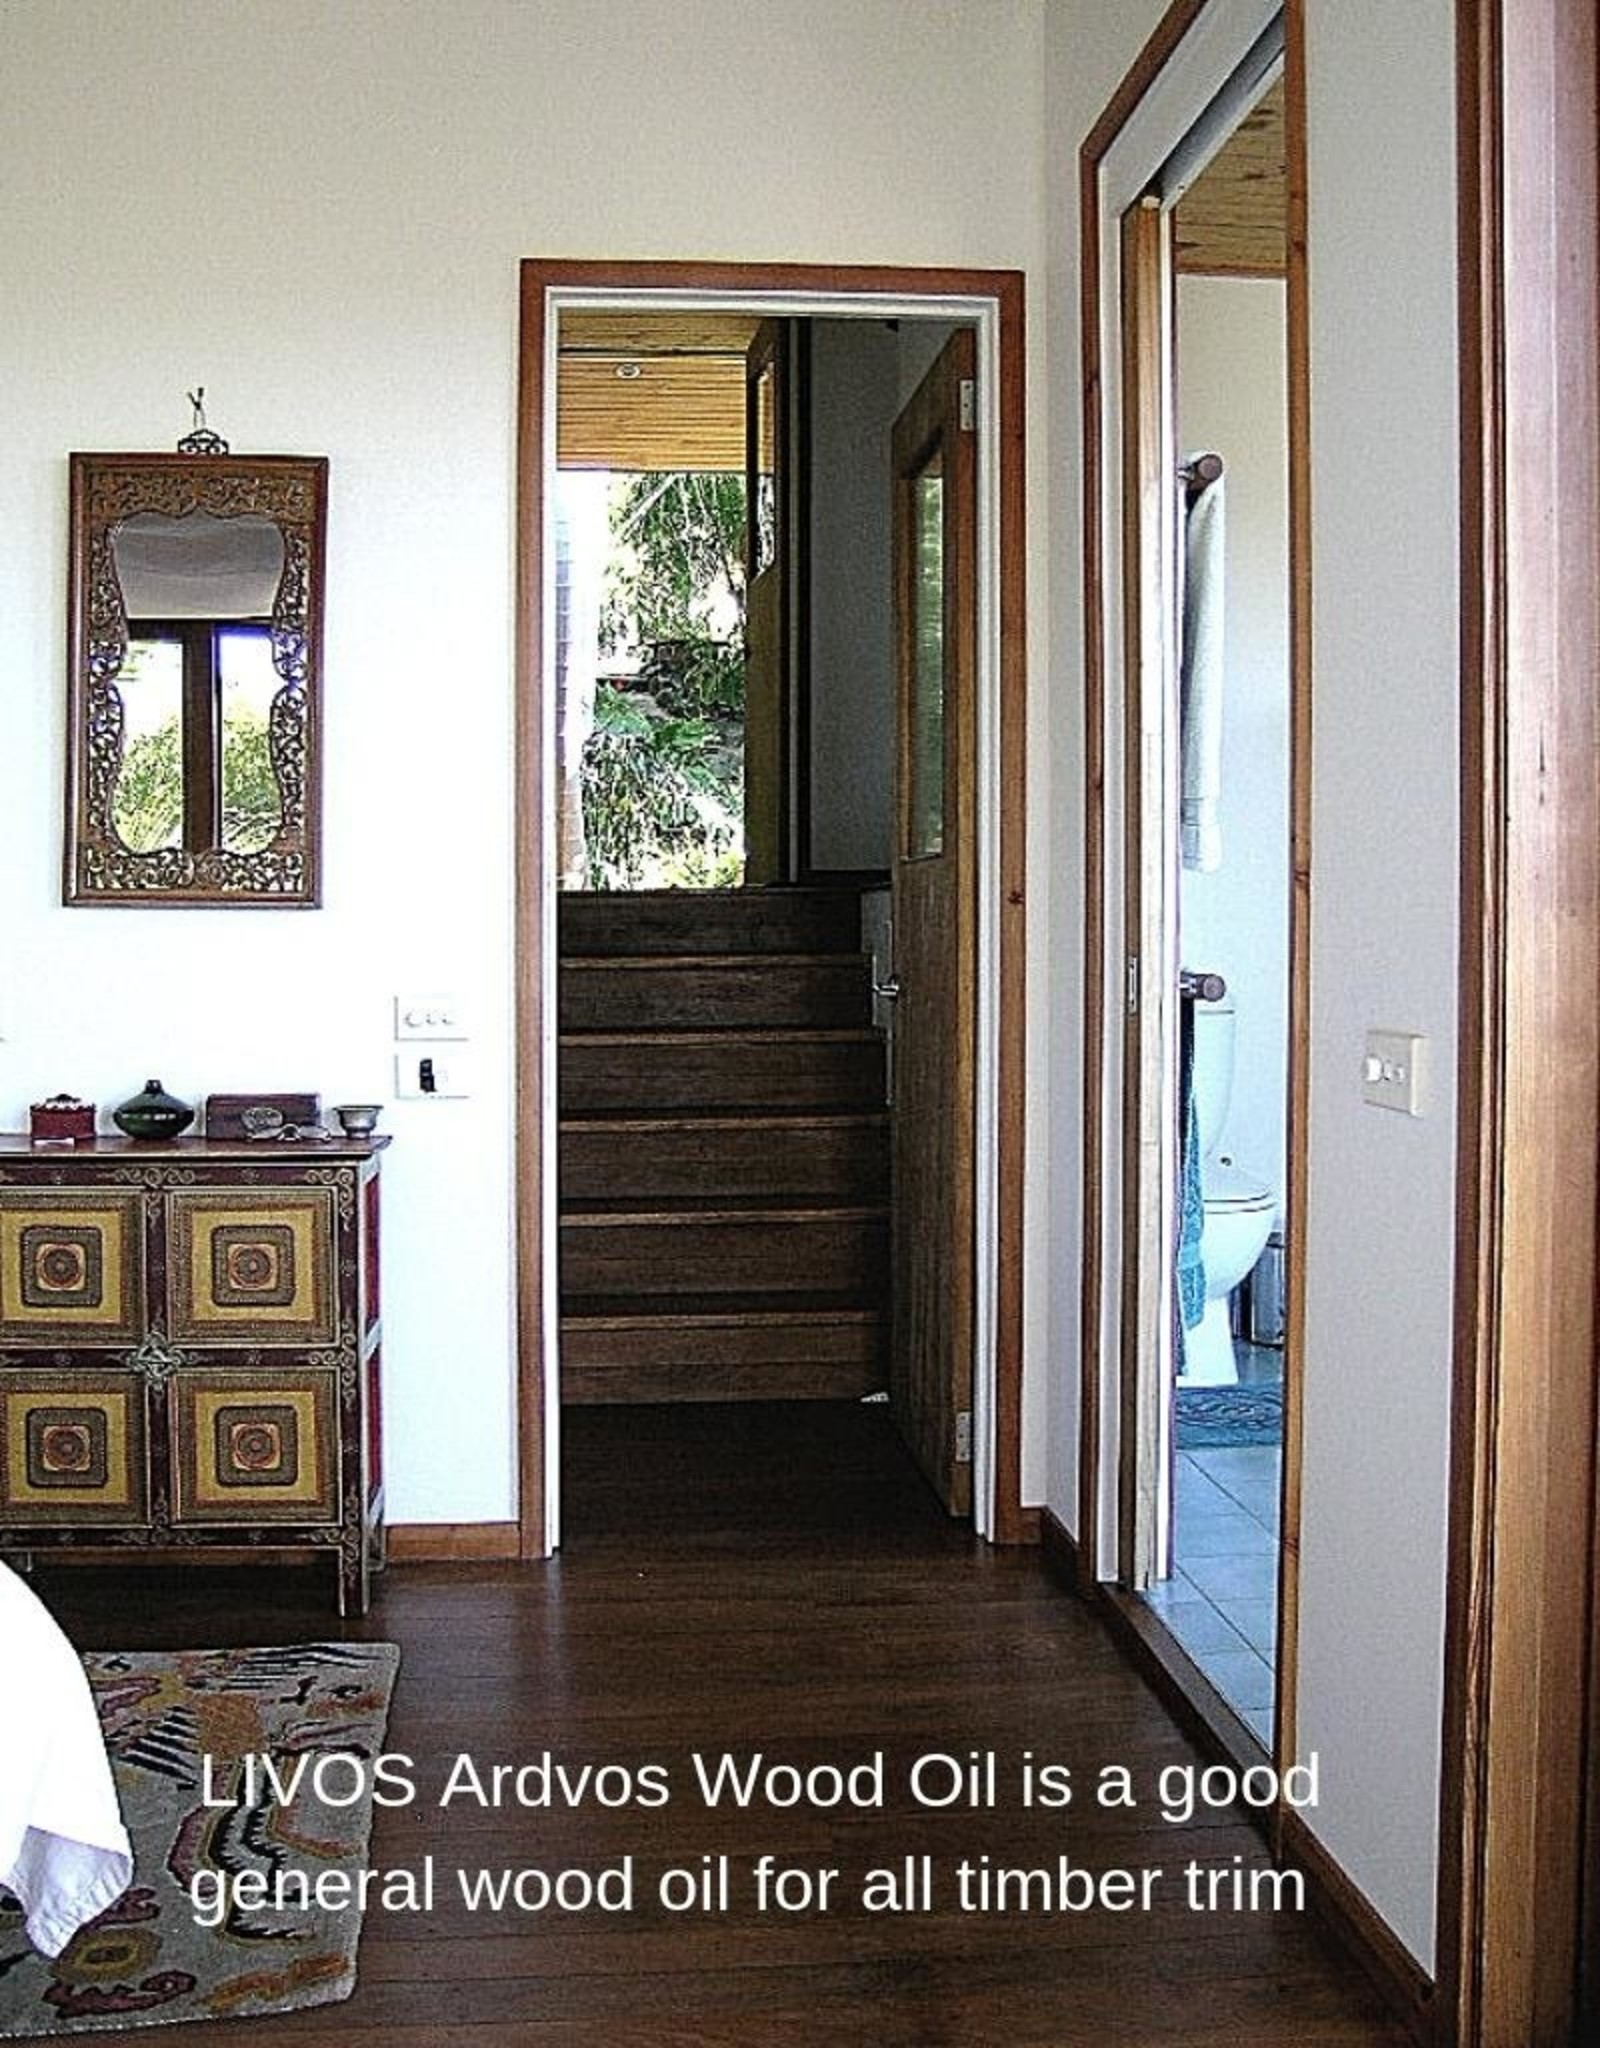 LIVOS Ardvos Wood Oil